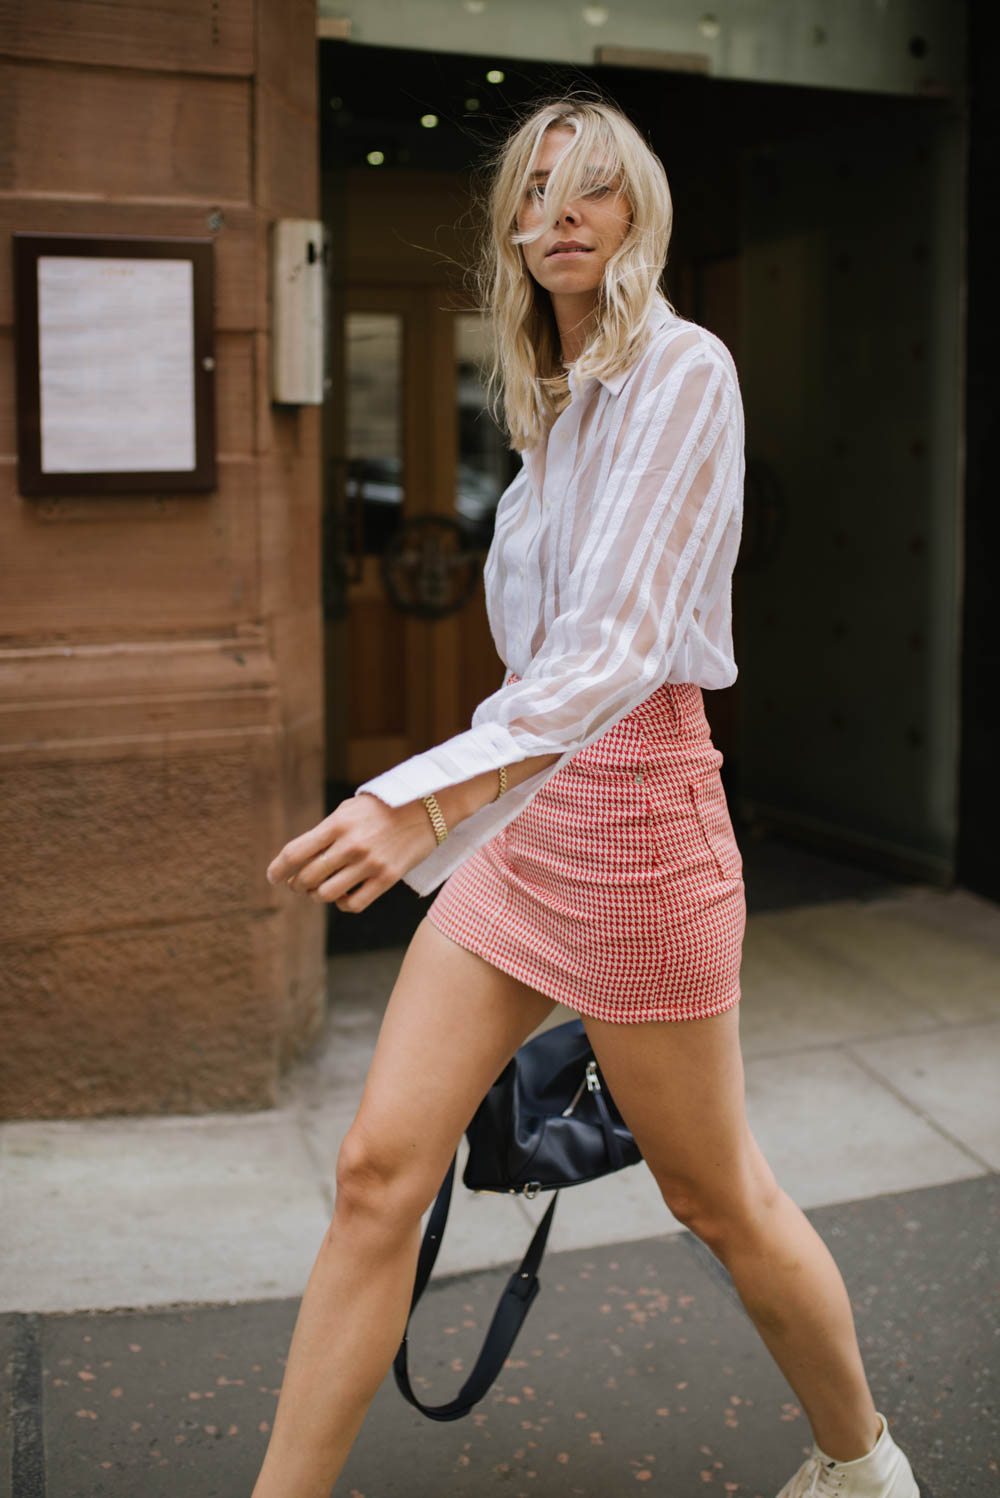 Red-Topshop-skirt-final-edits-16.jpg